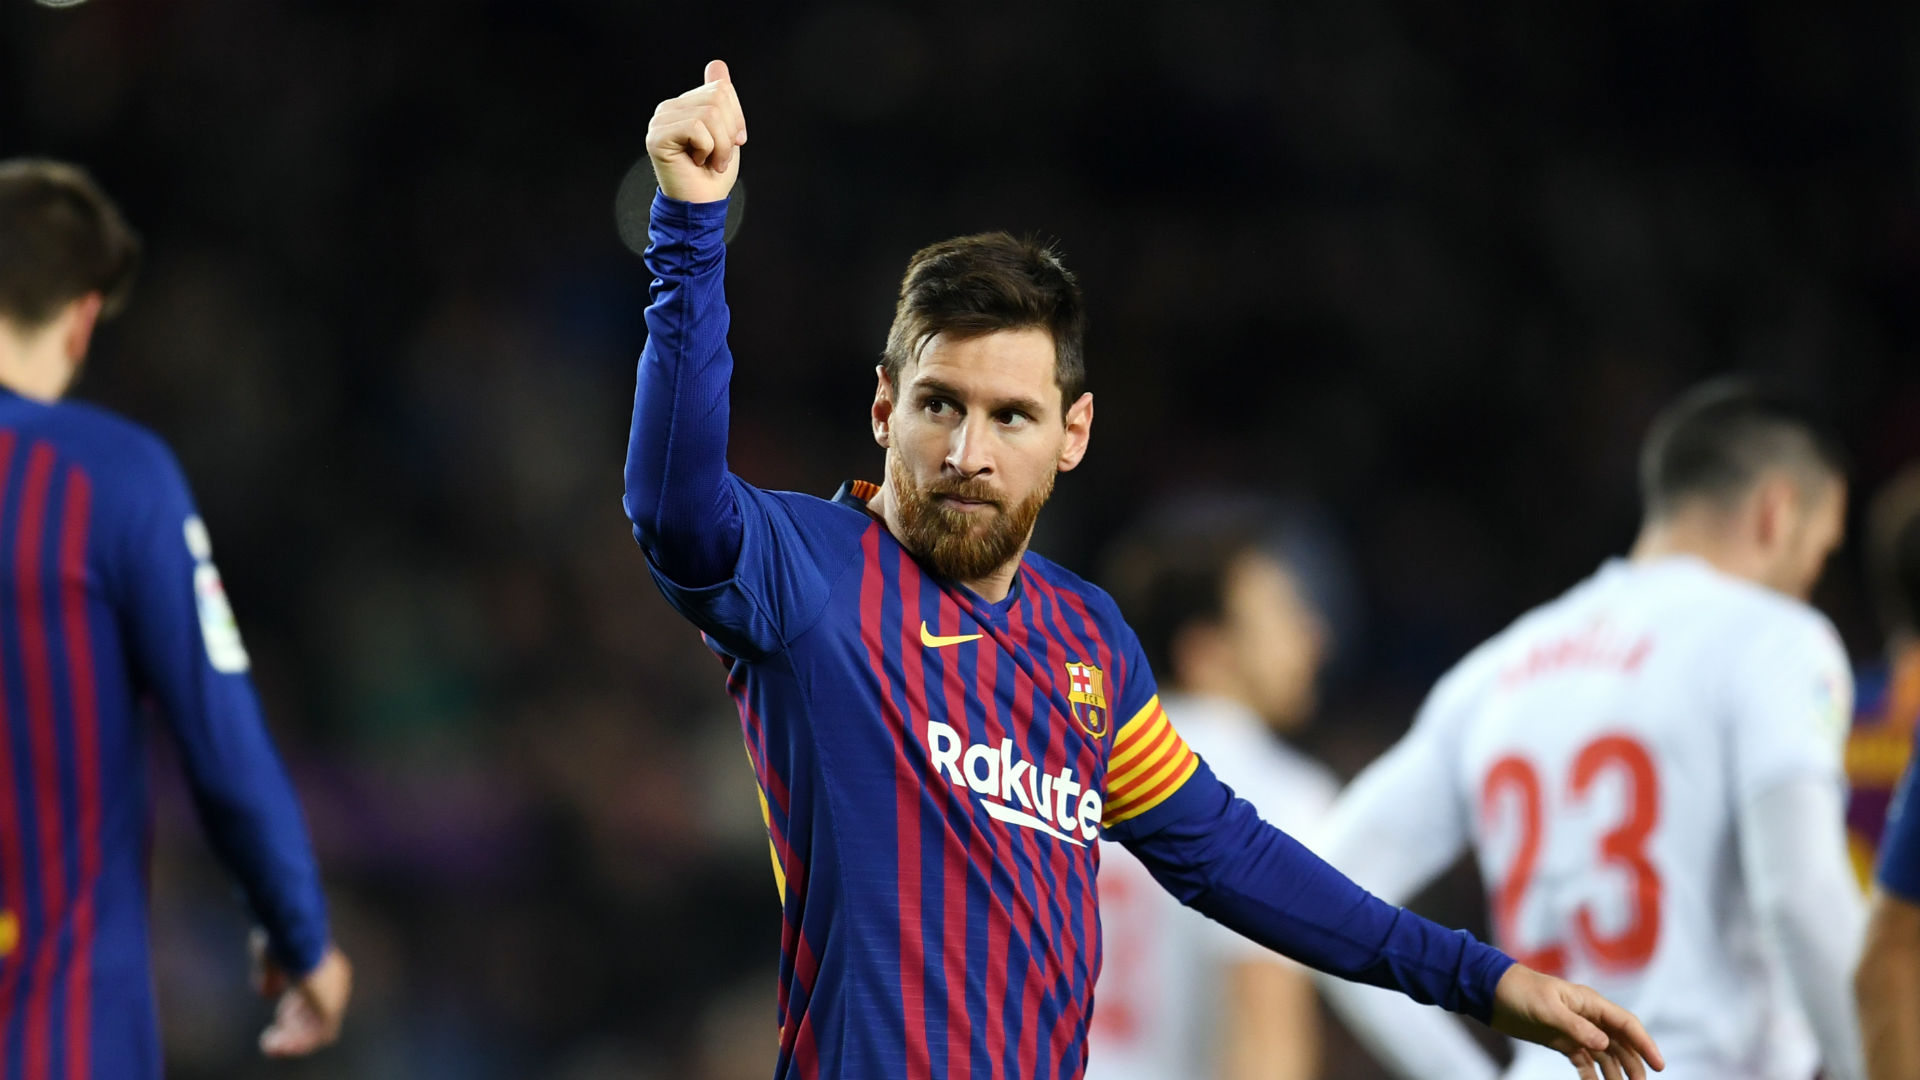 Barcelona 3 Eibar 0: Messi makes history with 400th LaLiga goal